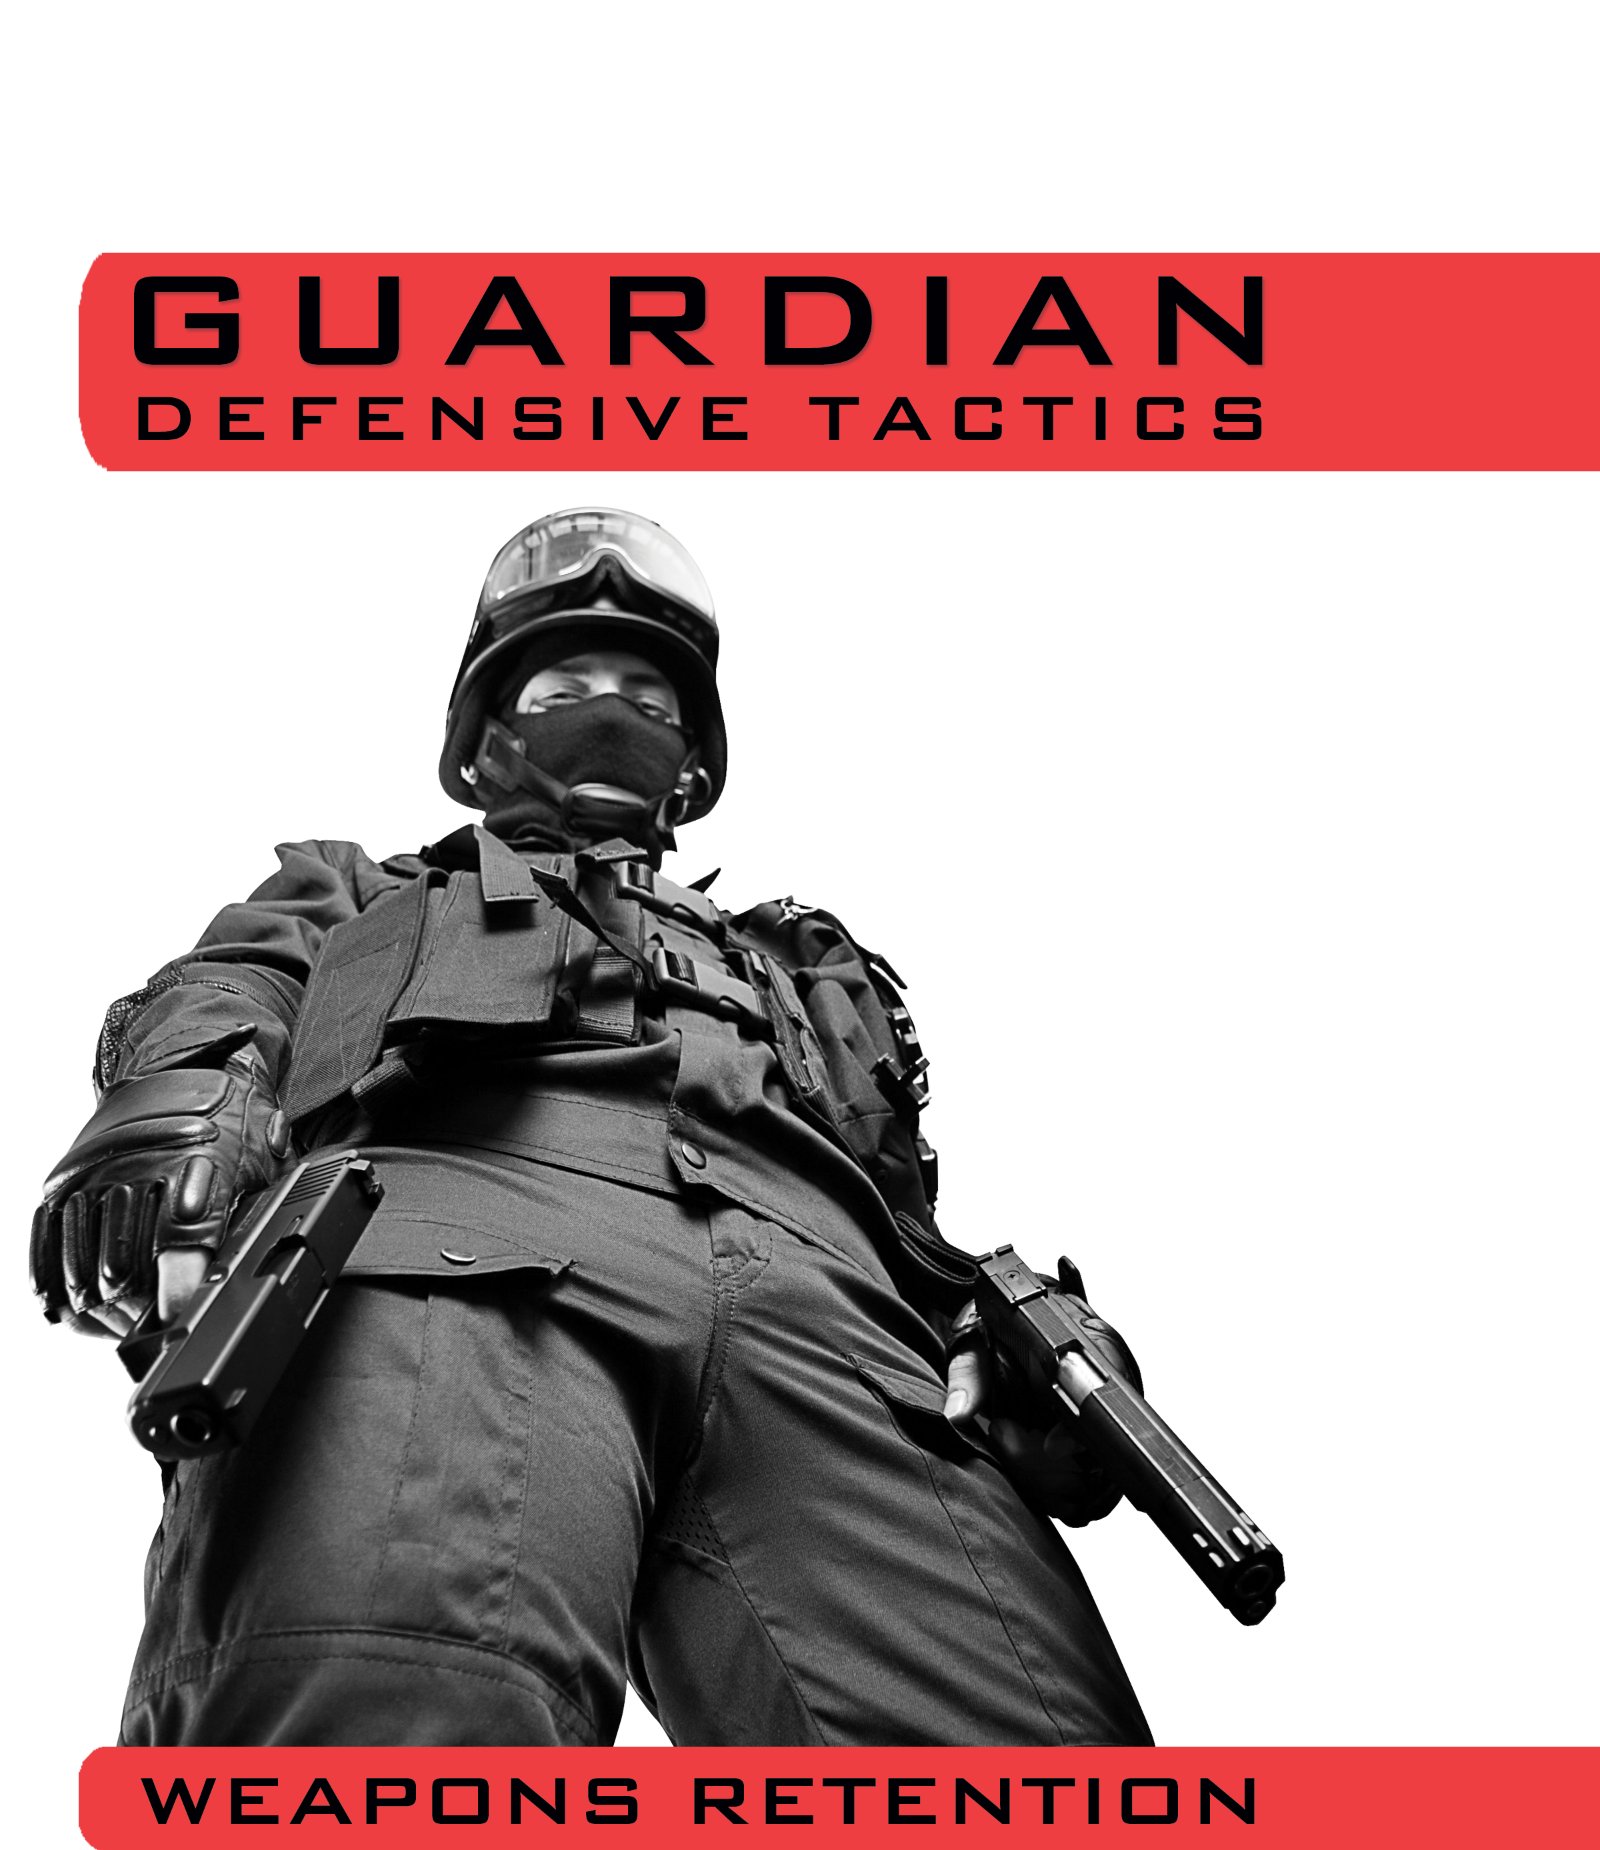 GUARDIAN - The Self Defense Co.